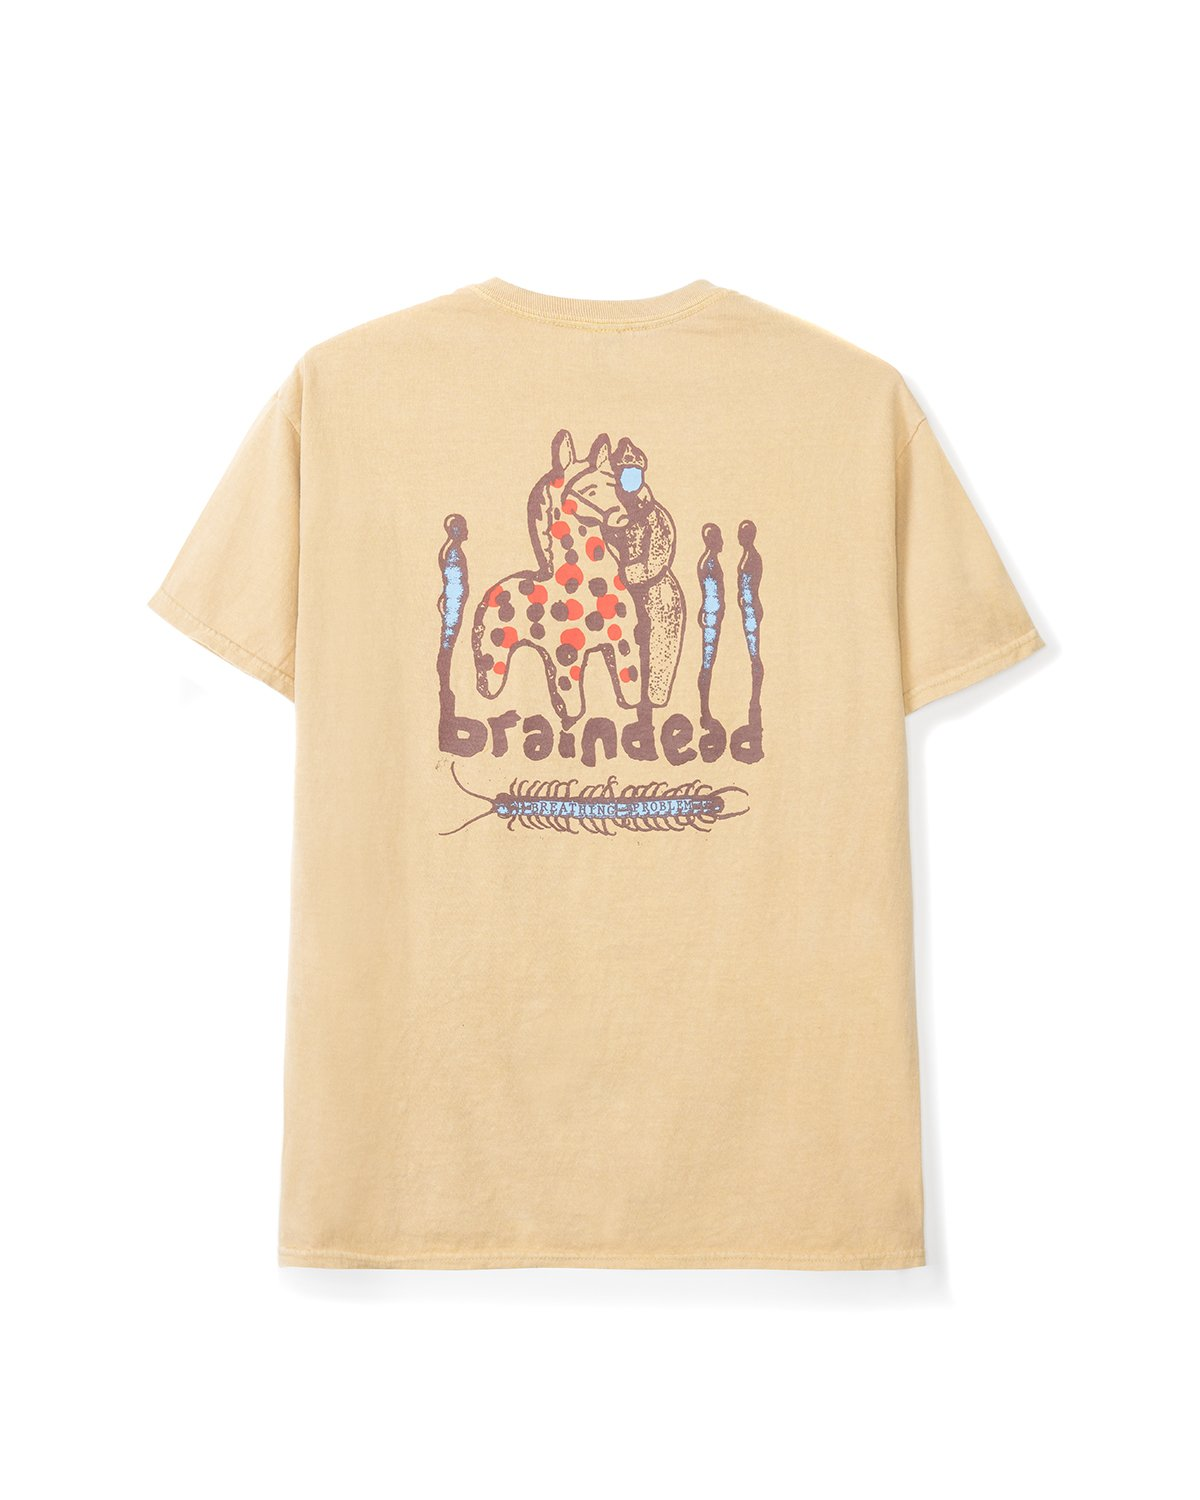 Braindead_Prefalltee_Yellow_Flat_Back_grande@3x